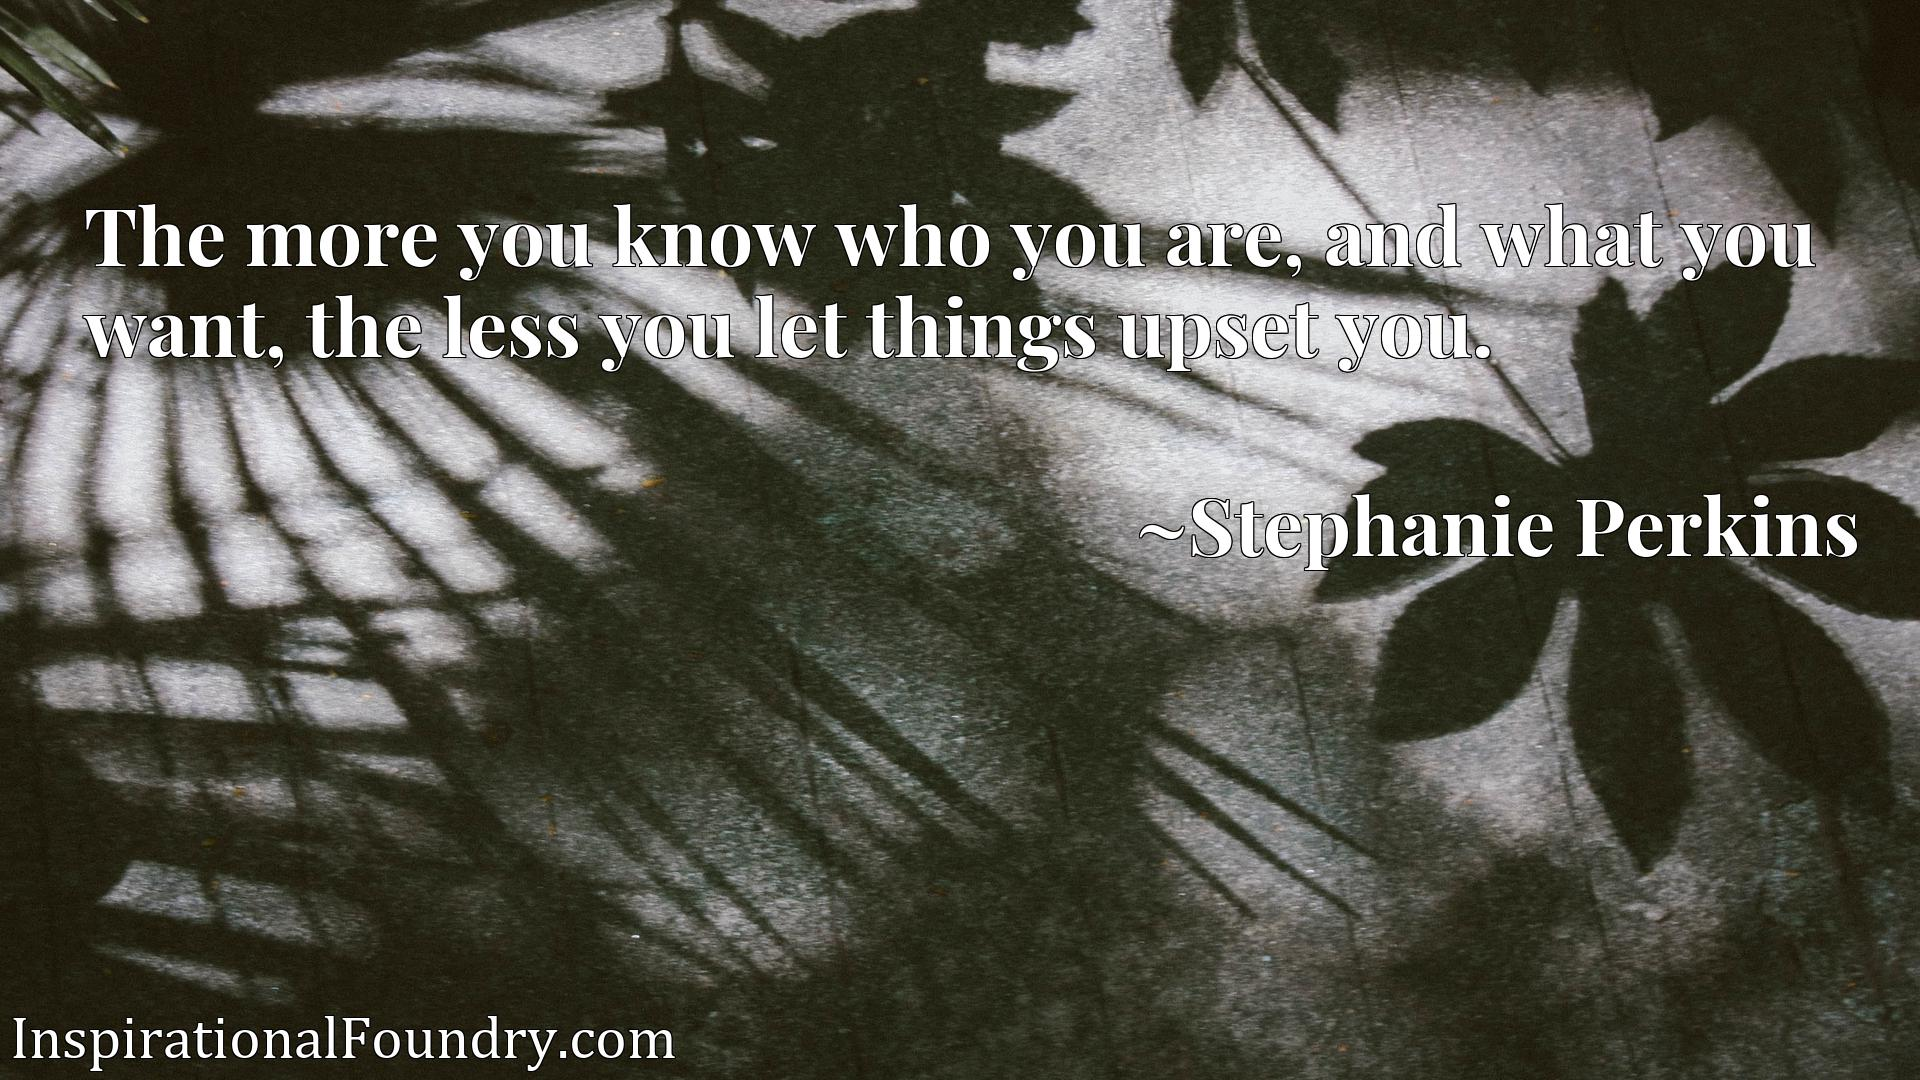 Quote Picture :The more you know who you are, and what you want, the less you let things upset you.